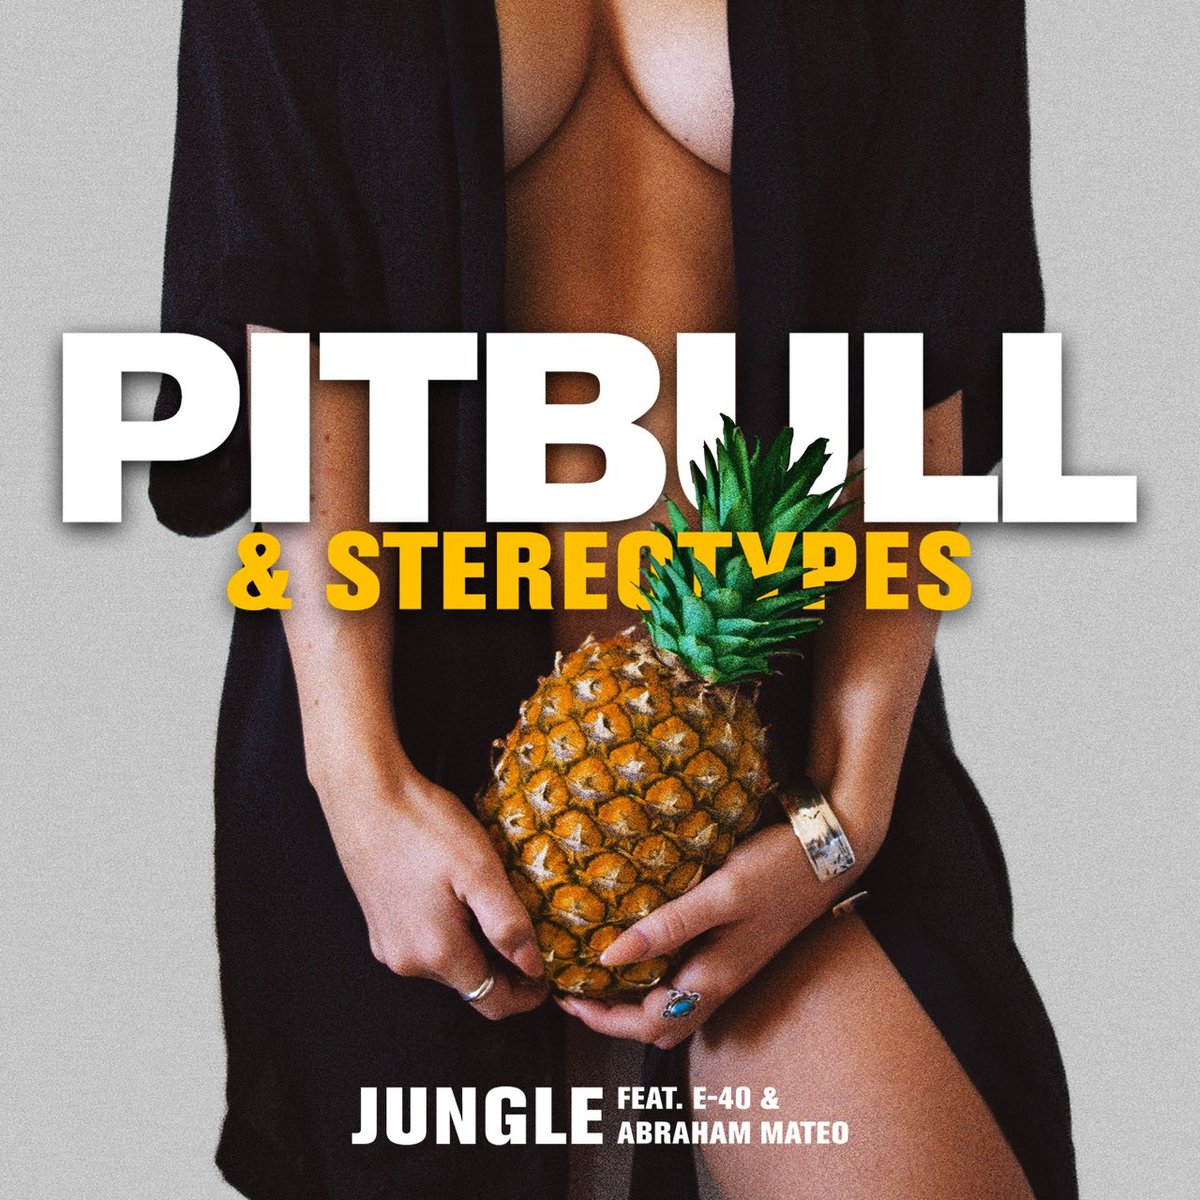 'Shake what your mama gave you' #Jungle with @Stereotypes Ft @E40 & @AbrahamMateo out now https://t.co/jDoFGclXZG https://t.co/NzodGA5xNq